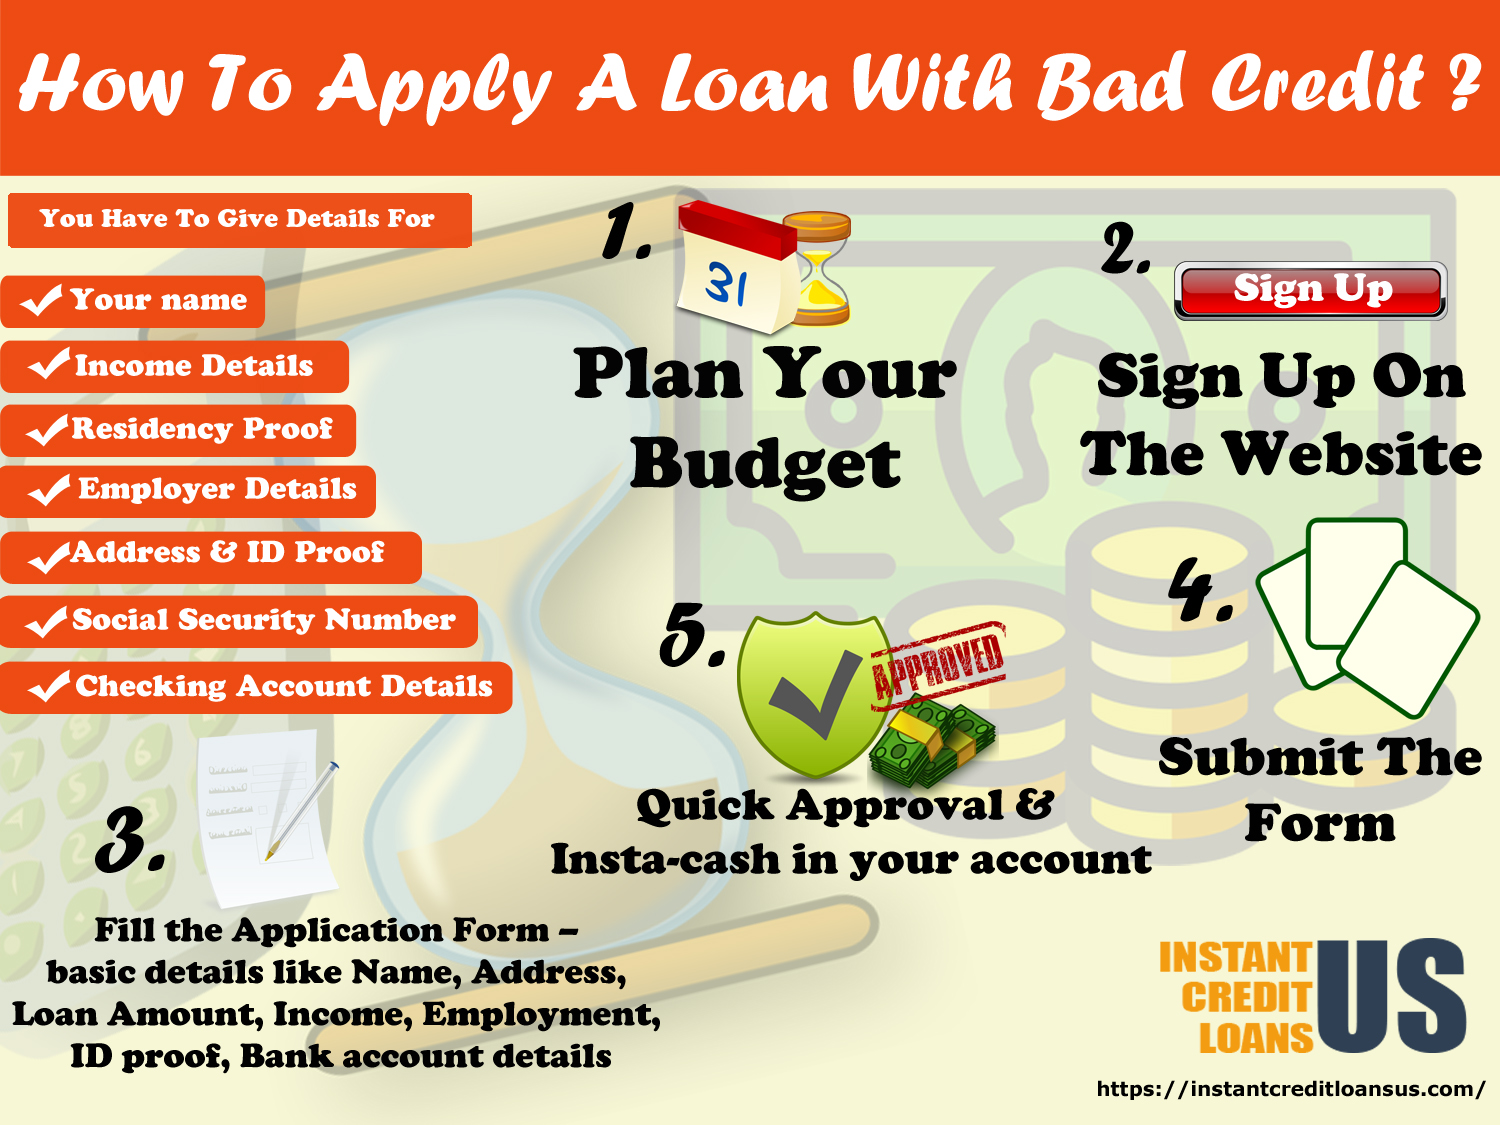 Payday loans in fountain valley ca image 8